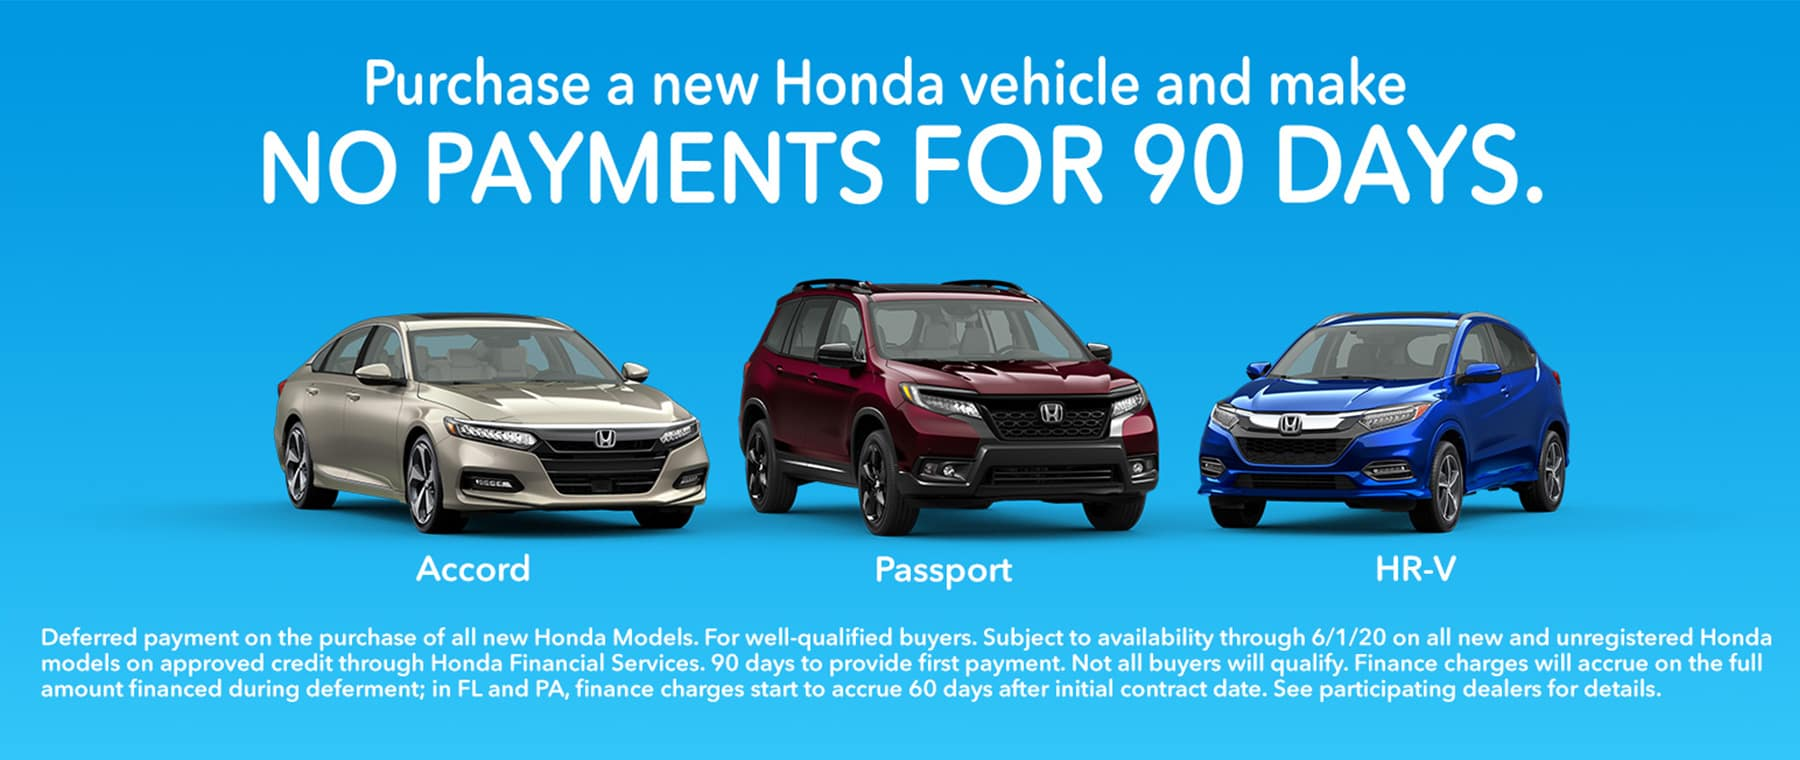 Honda No Payments for 90 days